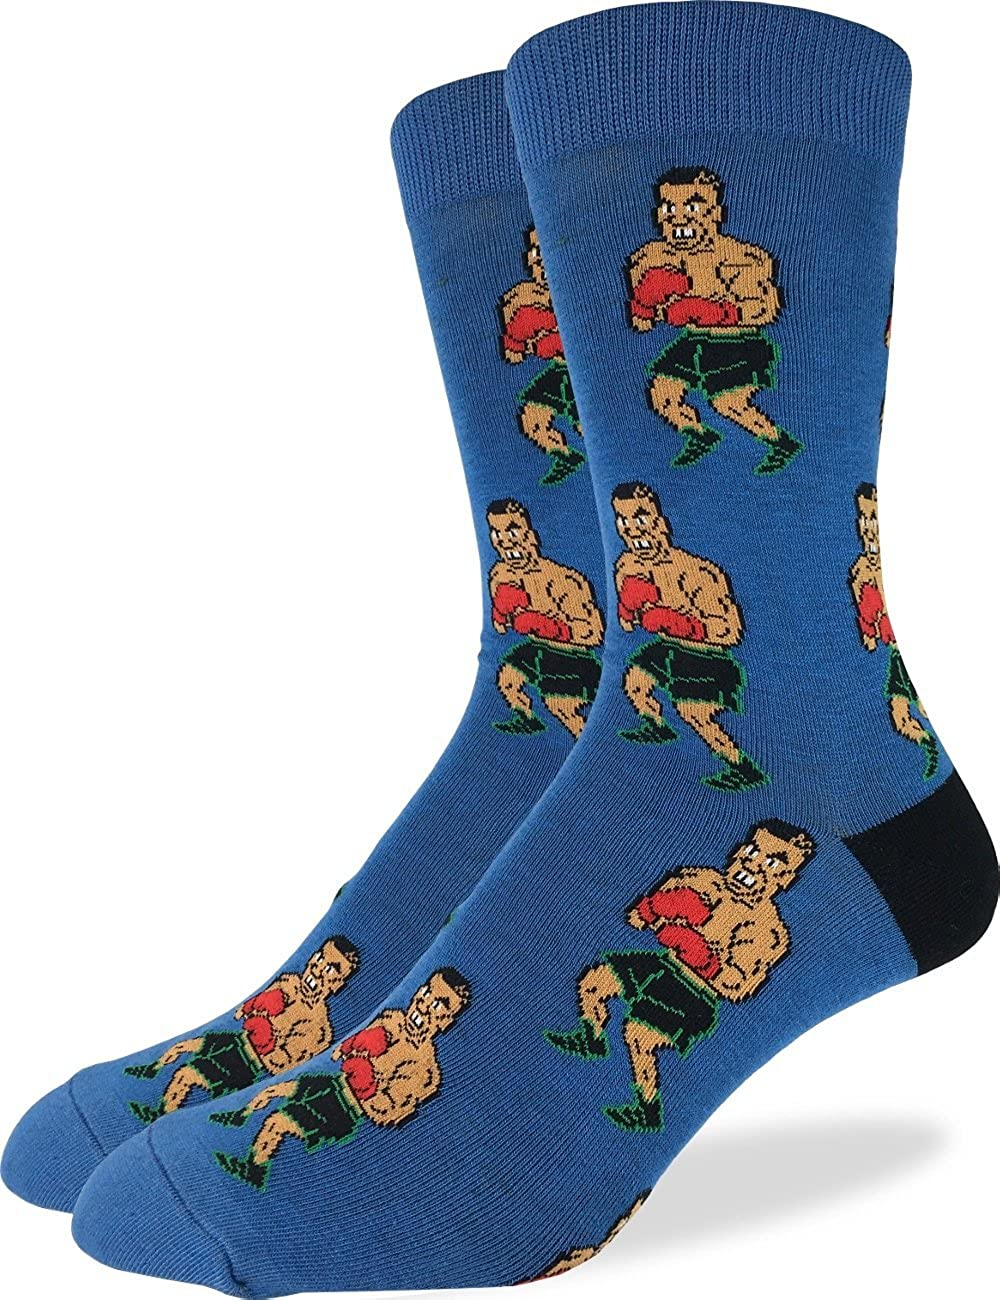 Good Luck Sock Men's Tyson Punch-Out!! Crew Socks - Blue, Shoe Size 7-12